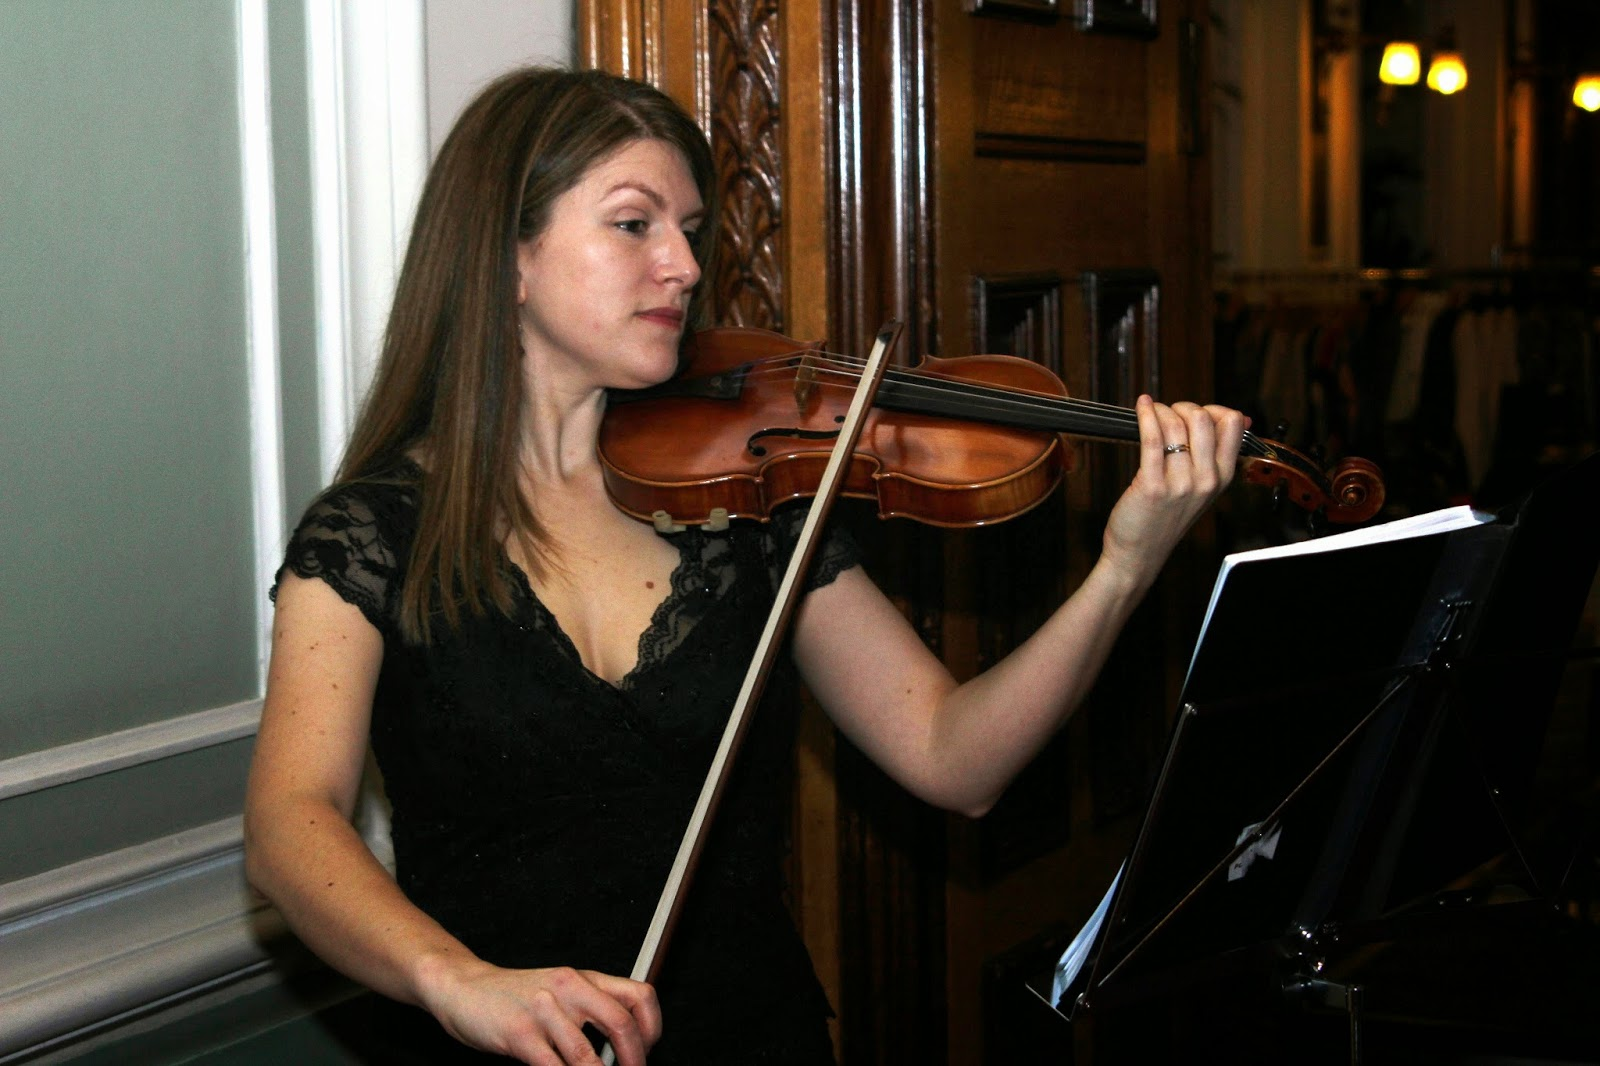 violinist during a Champagne reception